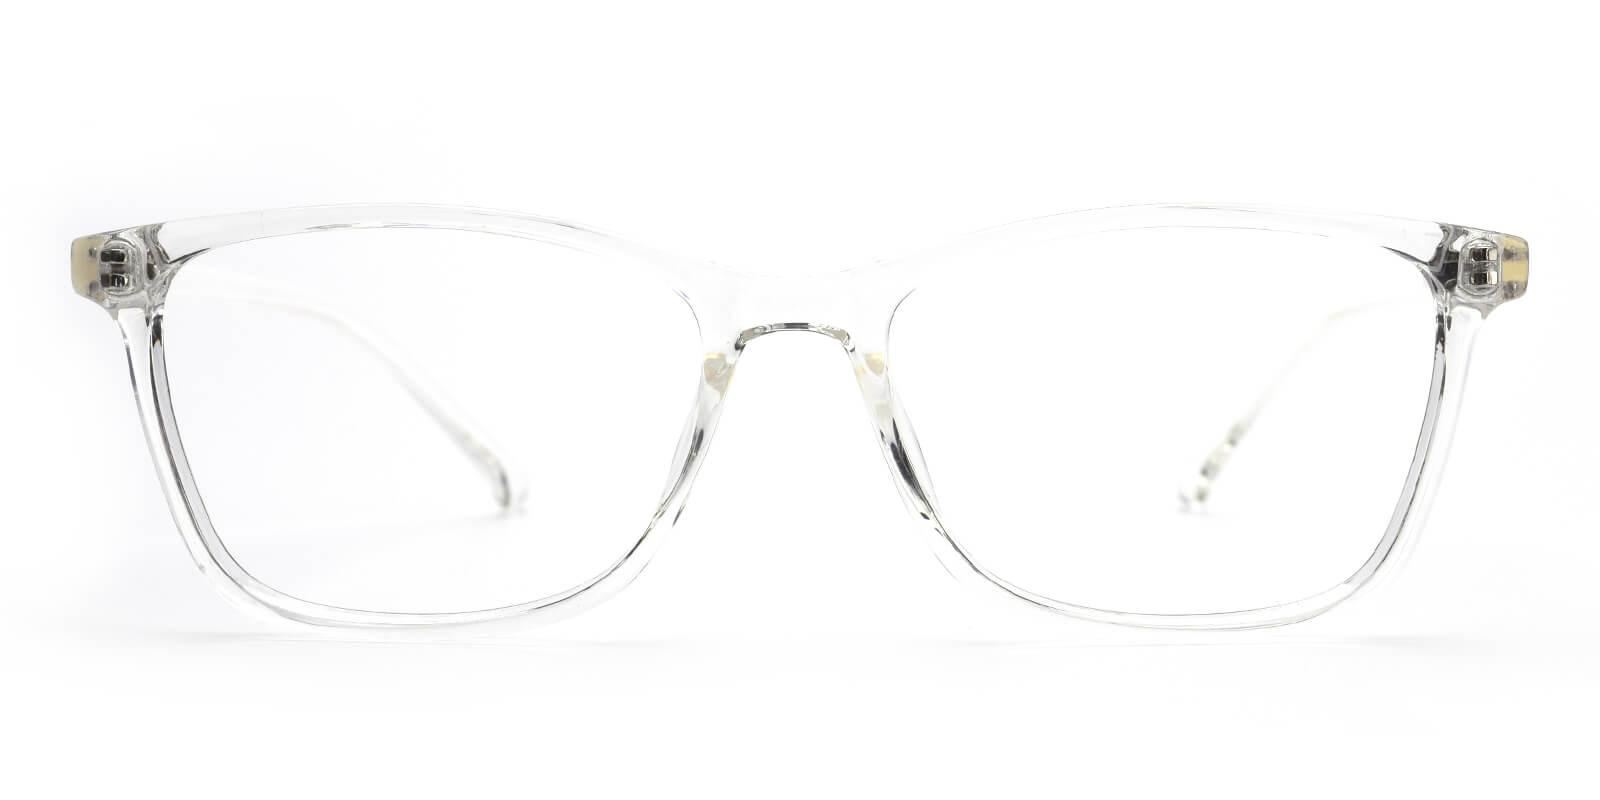 Suofia-Translucent-Cat-TR-Eyeglasses-detail